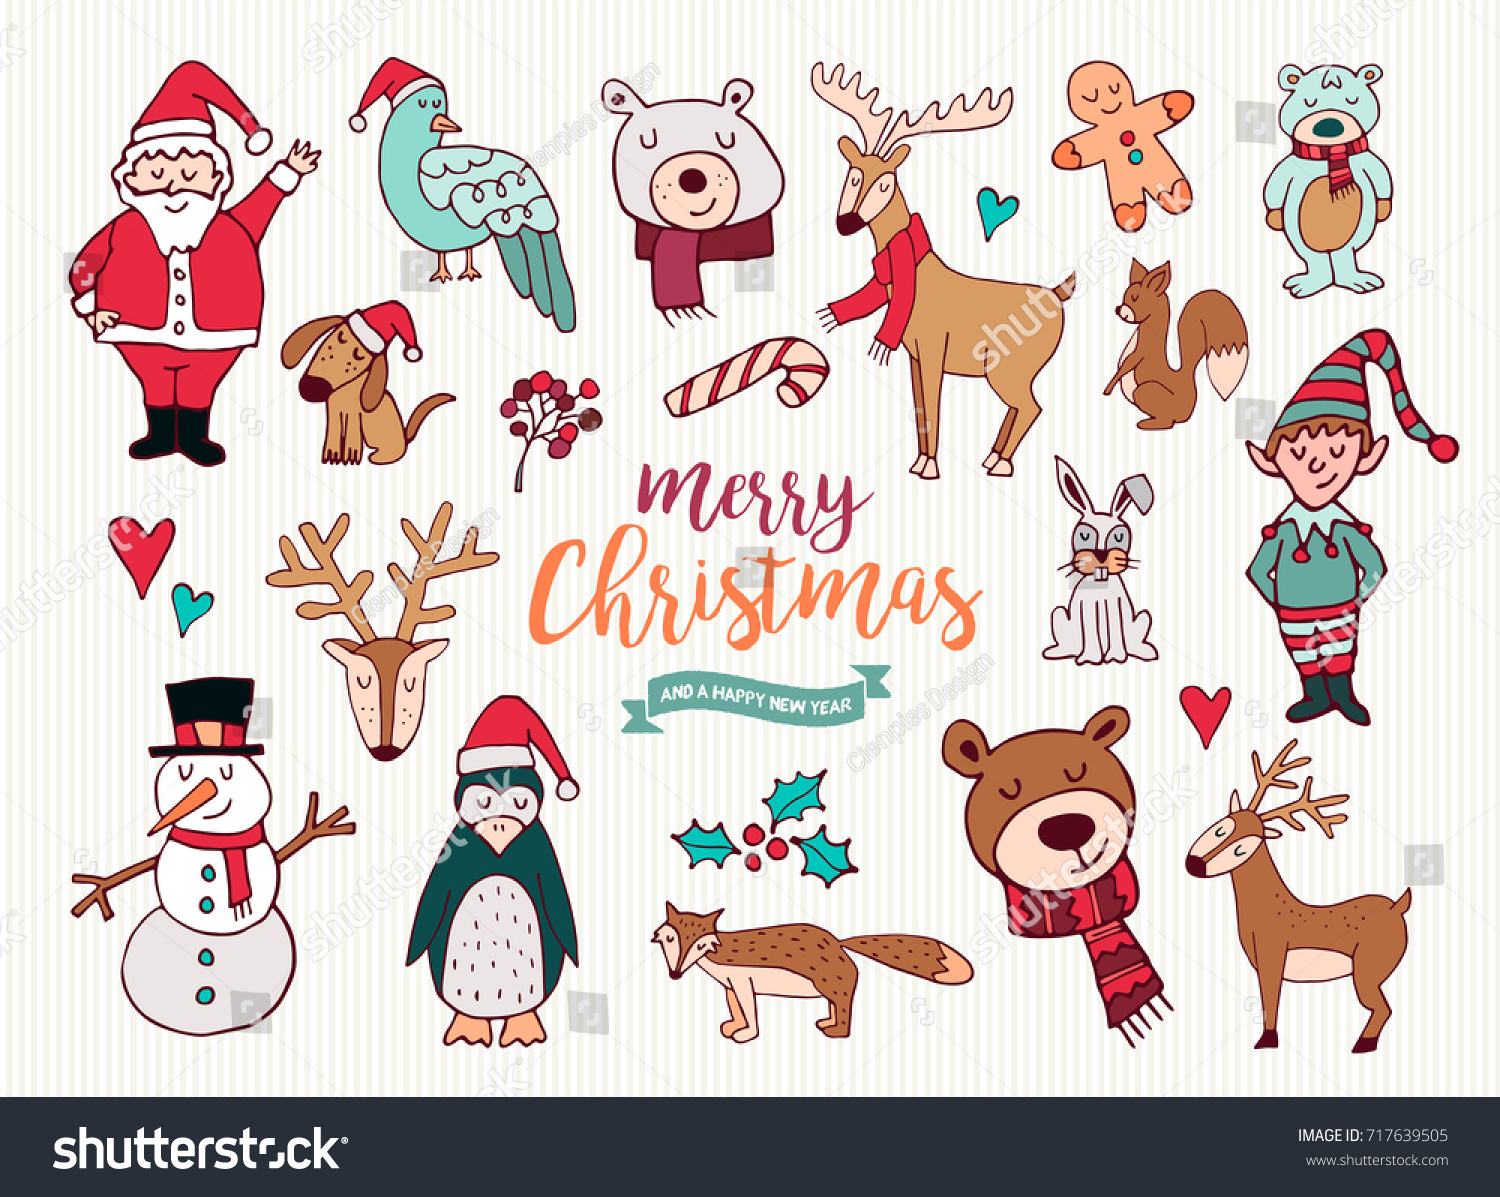 merry christmas happy new year cute festive cartoon element collection set of hand drawn holiday